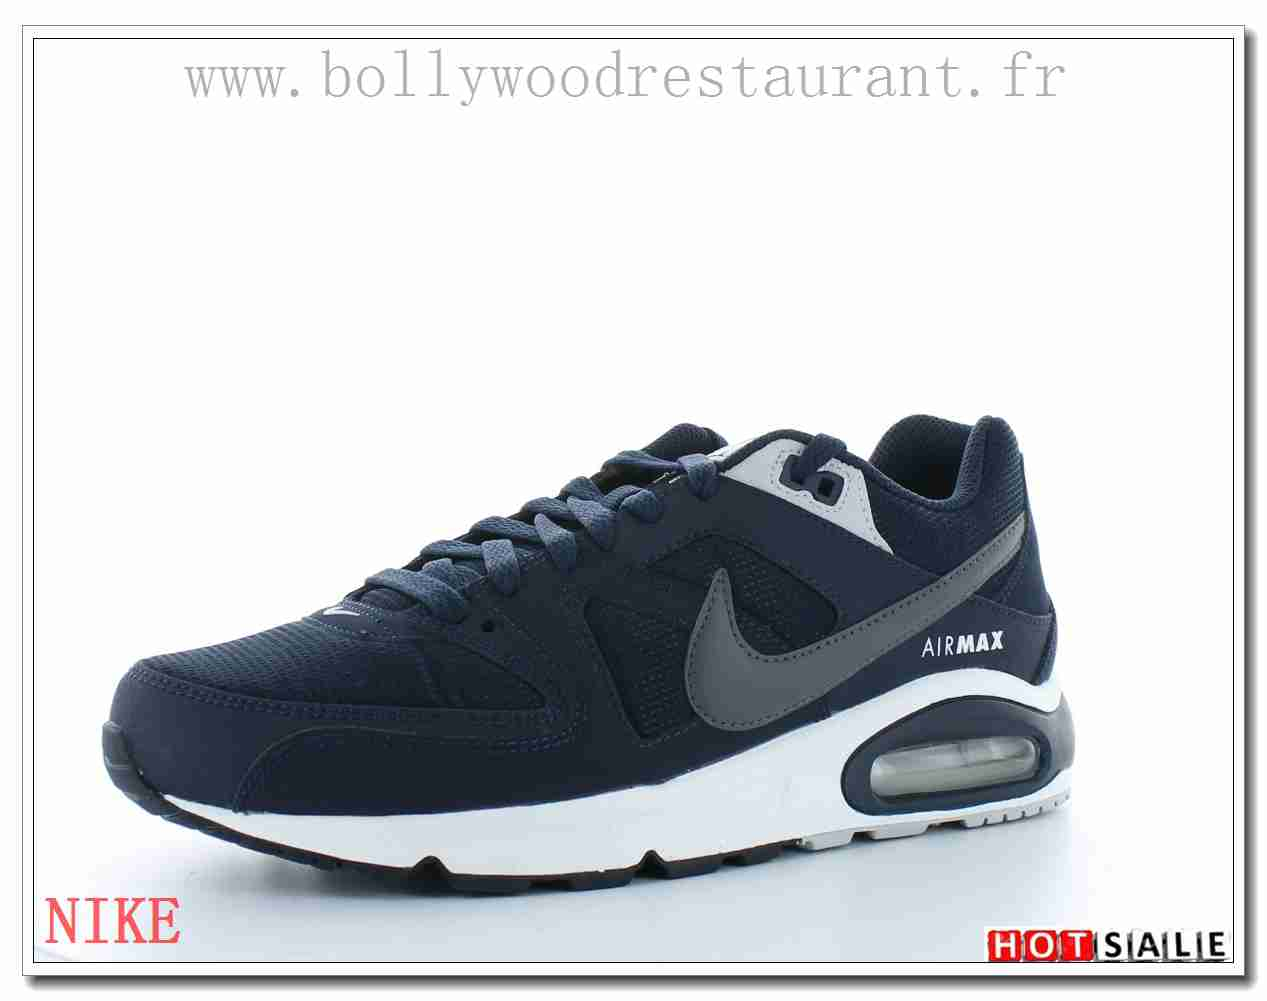 info for e25e1 2641d XA9809 Plus Tard 2018 Nouveau style Nike Air Max Command - Homme Chaussures  - Promotions Vente - H.K.Y. 321 - Taille   40~44